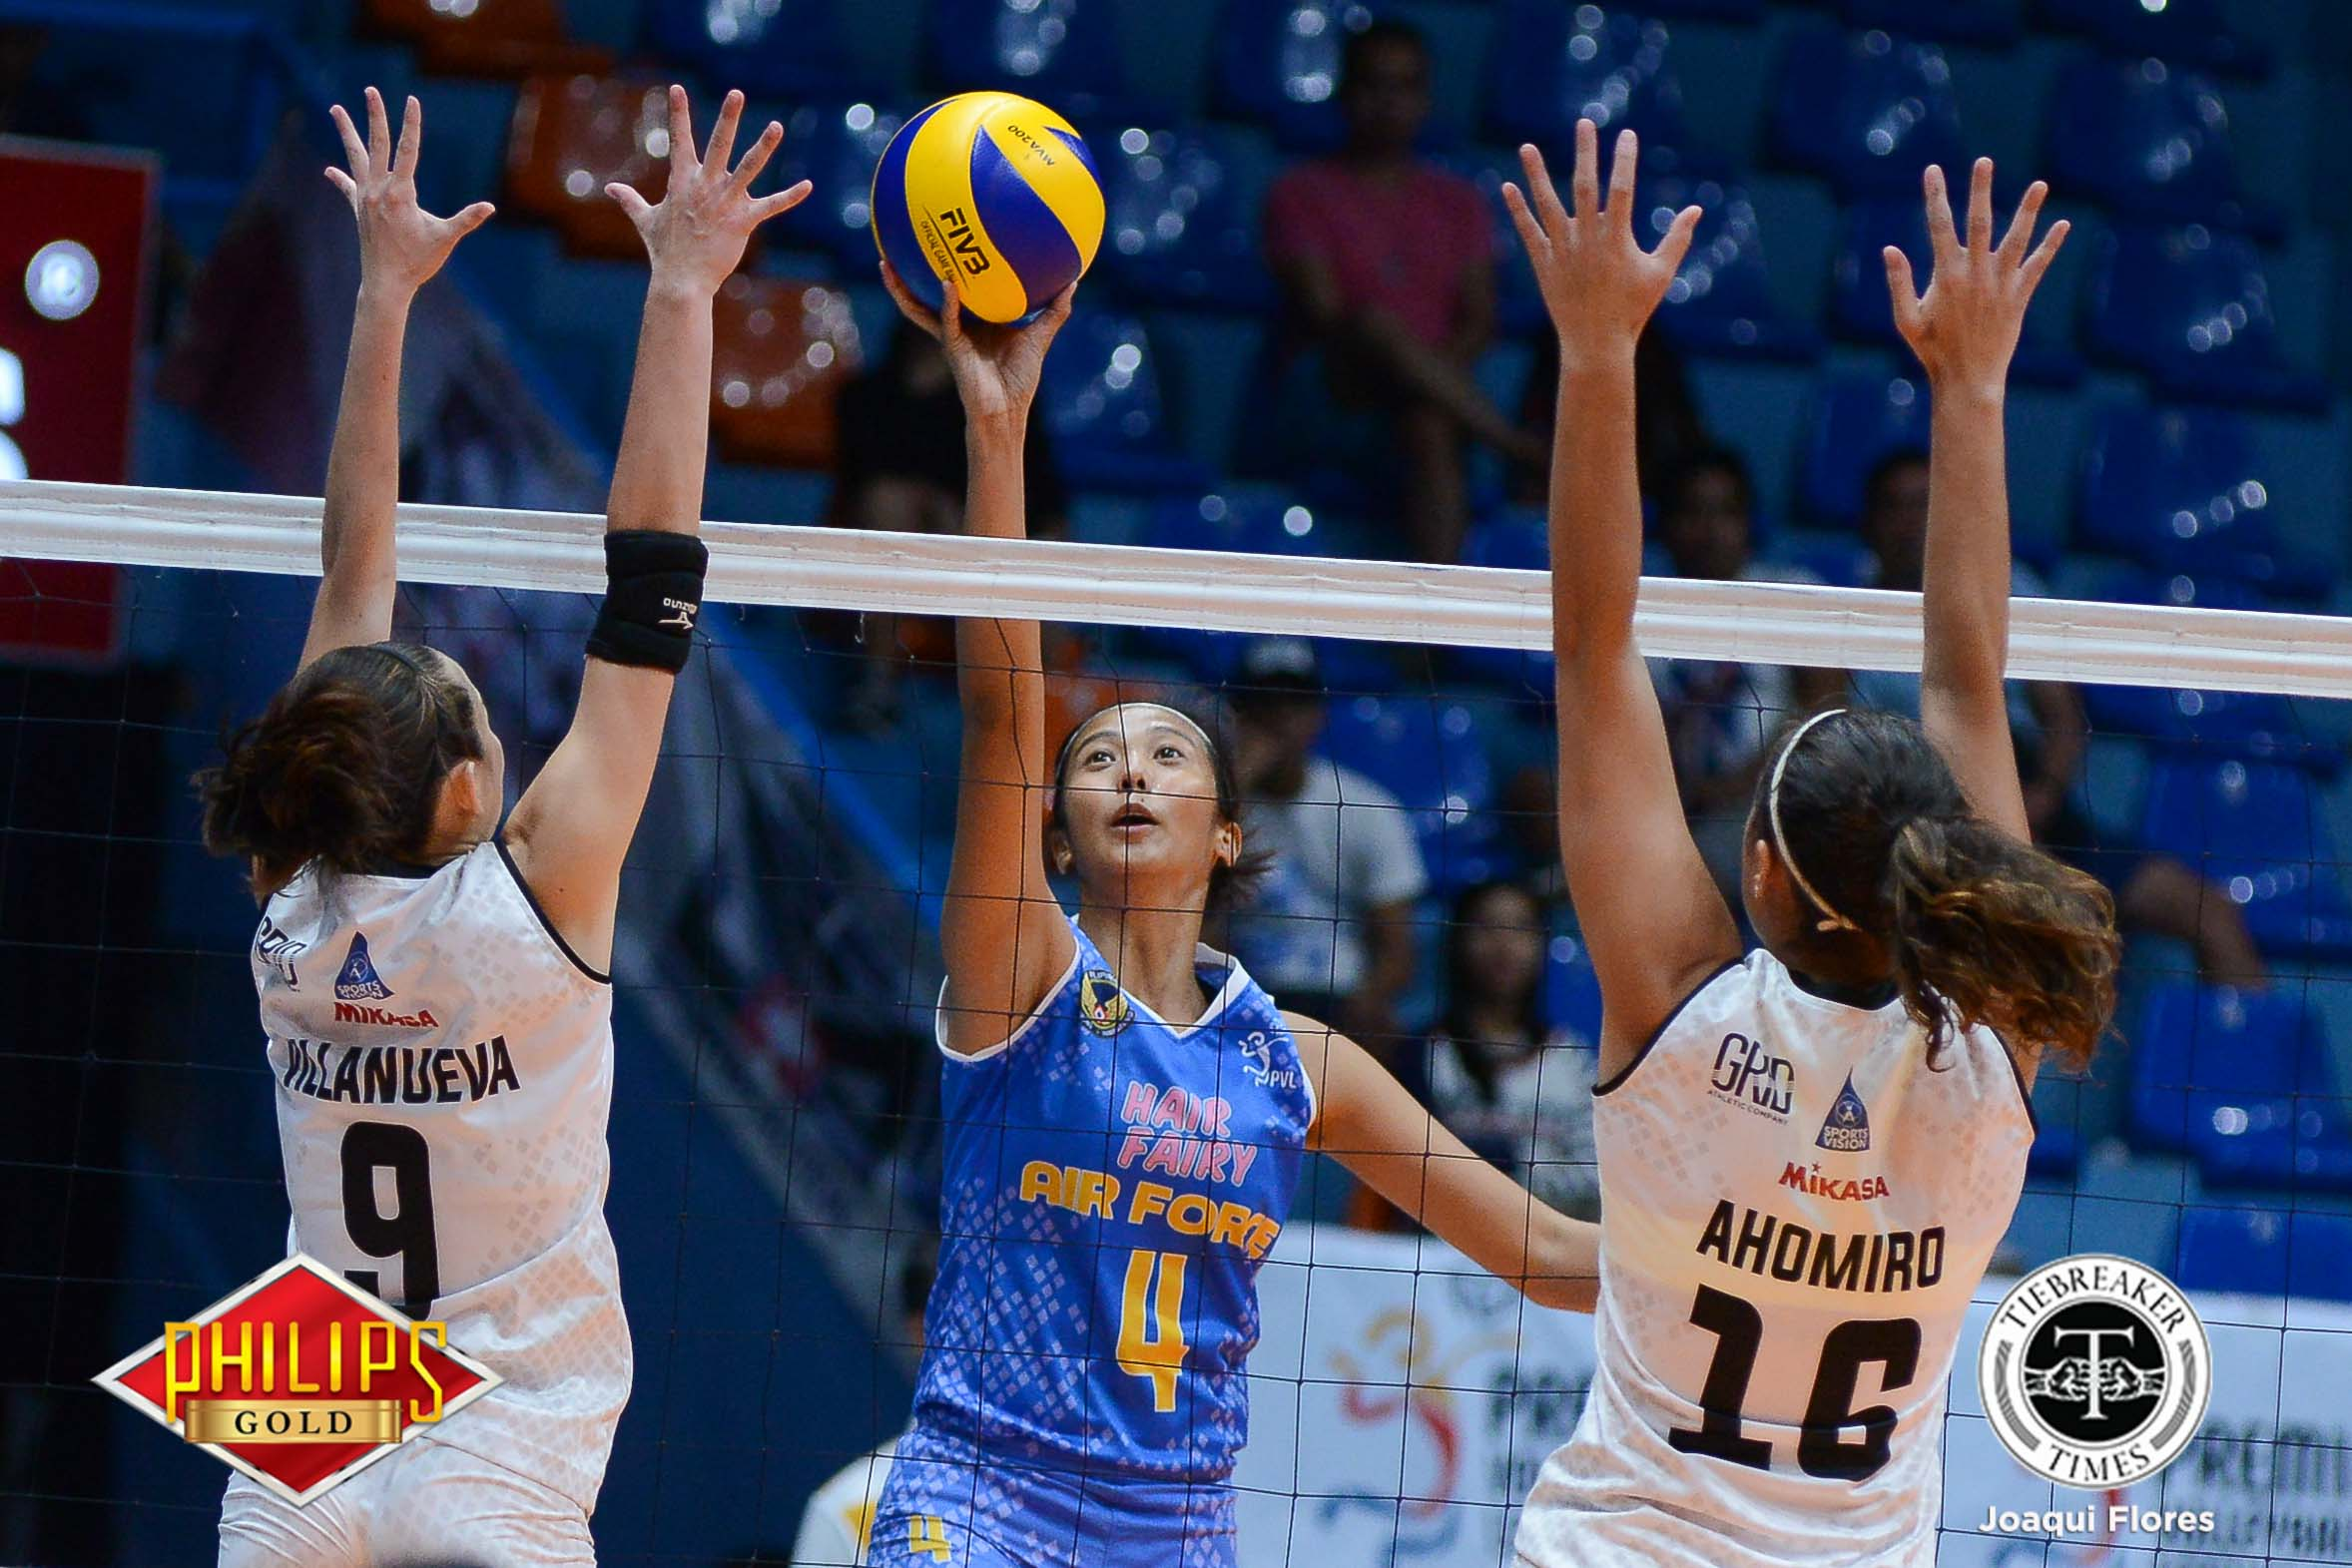 Philippine Sports News - Tiebreaker Times Hair Fairy-Air Force earns first win at expense of depleted Perlas-BanKo News PVL Volleyball  Wendy Semana Sasa Devanadera Perlas Lady Spikers Nai Muhammed Mary Ann Balmaceda Jocemer Tapic Jasper Jimenez Iari Yongco Amanda Villanueva Air Force Jet Spikers 2017 PVL Women's Open Conference 2017 PVL Season